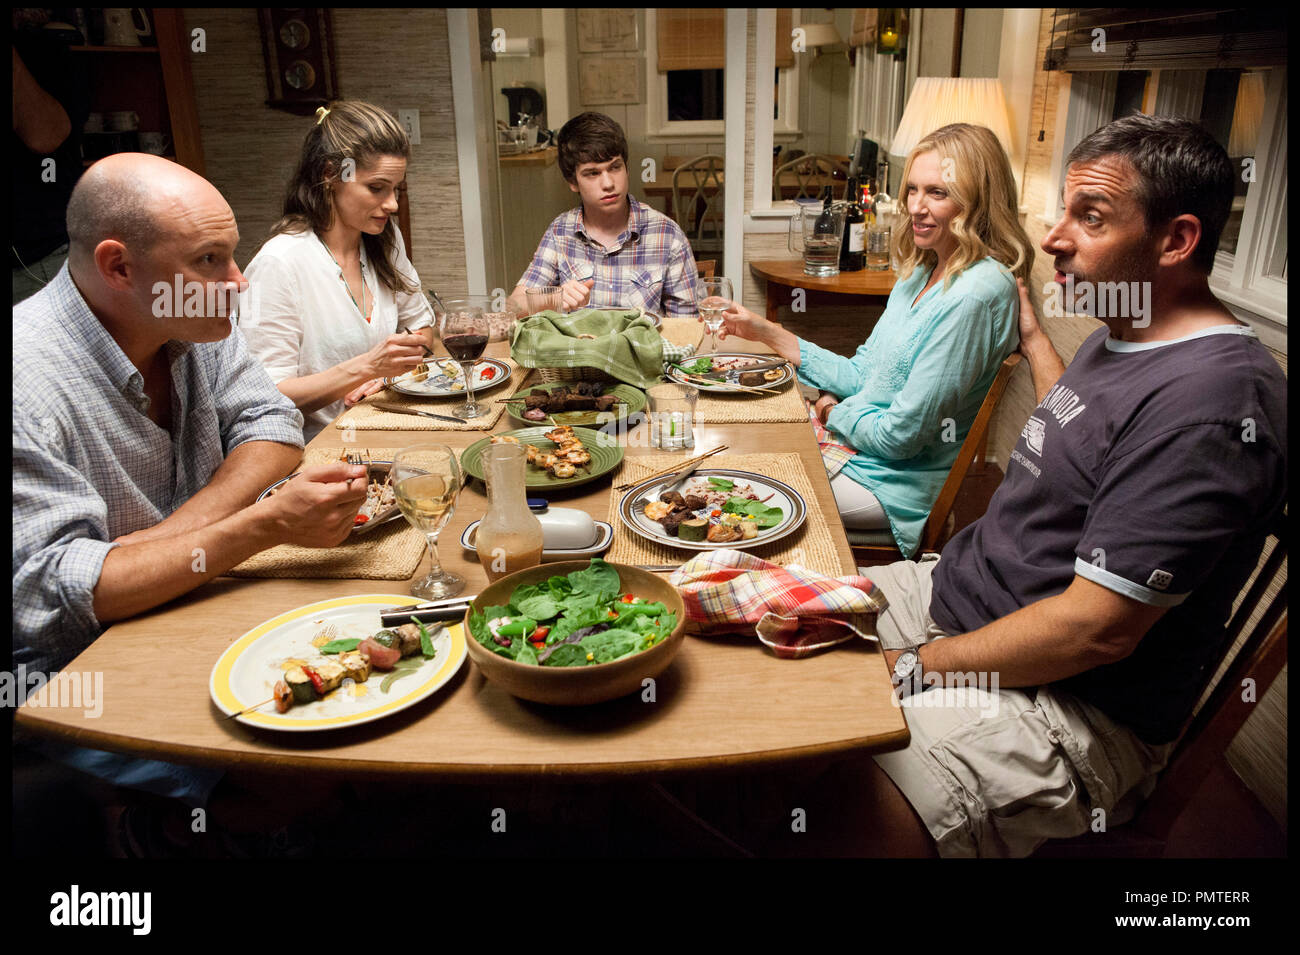 Cuisine Aviva Belfort rob way stock photos & rob way stock images - page 2 - alamy